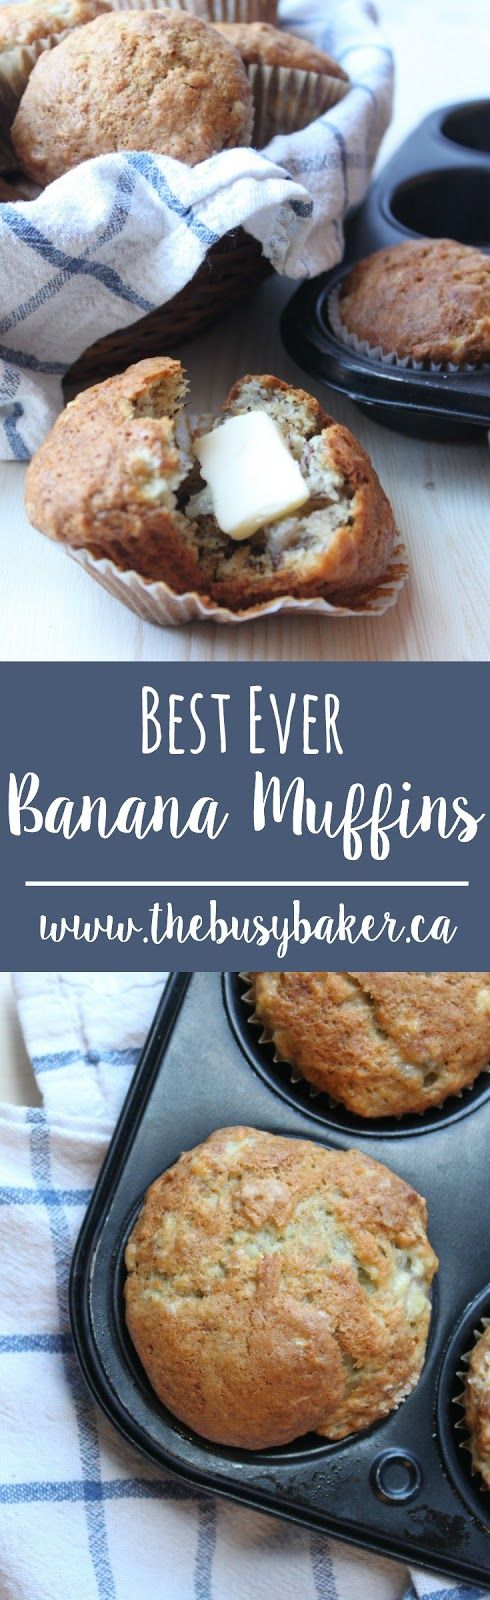 These Best Ever Banana Muffins have been pinned over 30k times! They're the perfect muffin for Mother's Day Brunch!